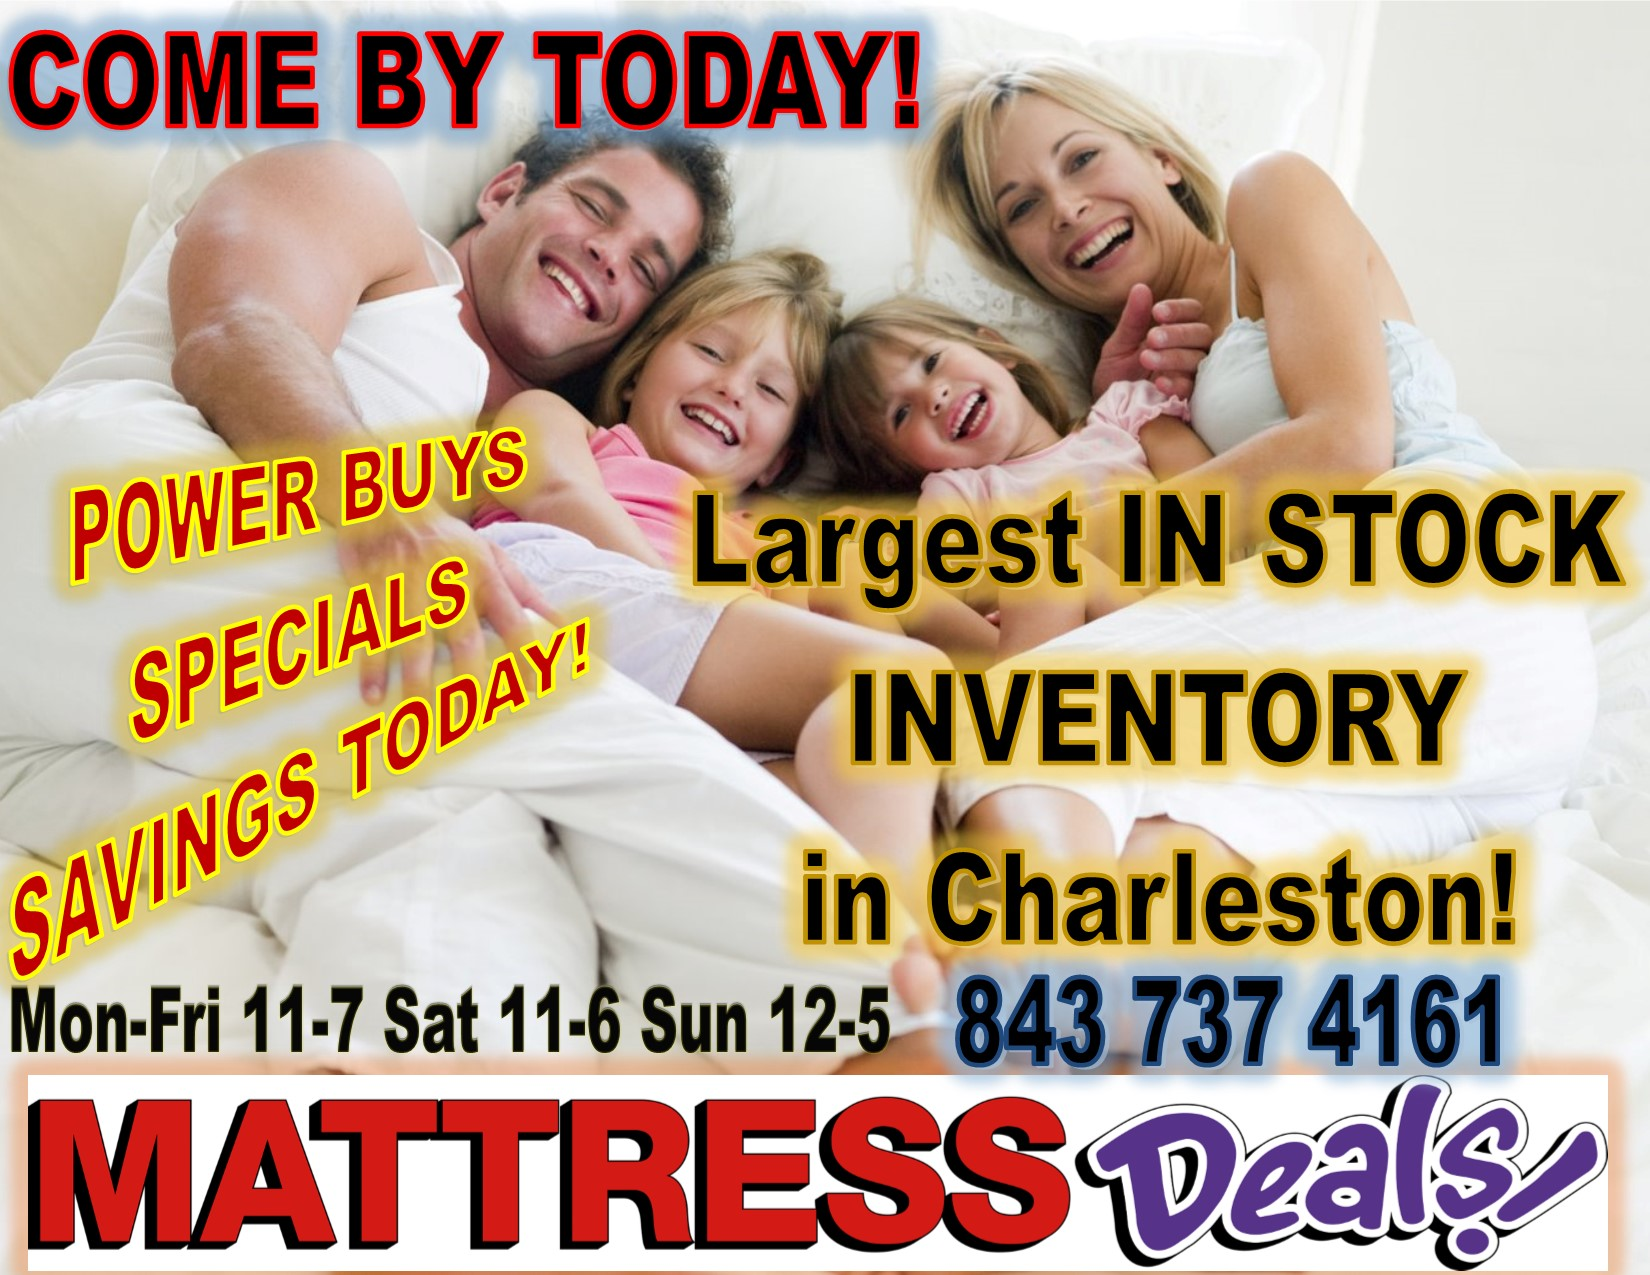 Mattress Deals image 14